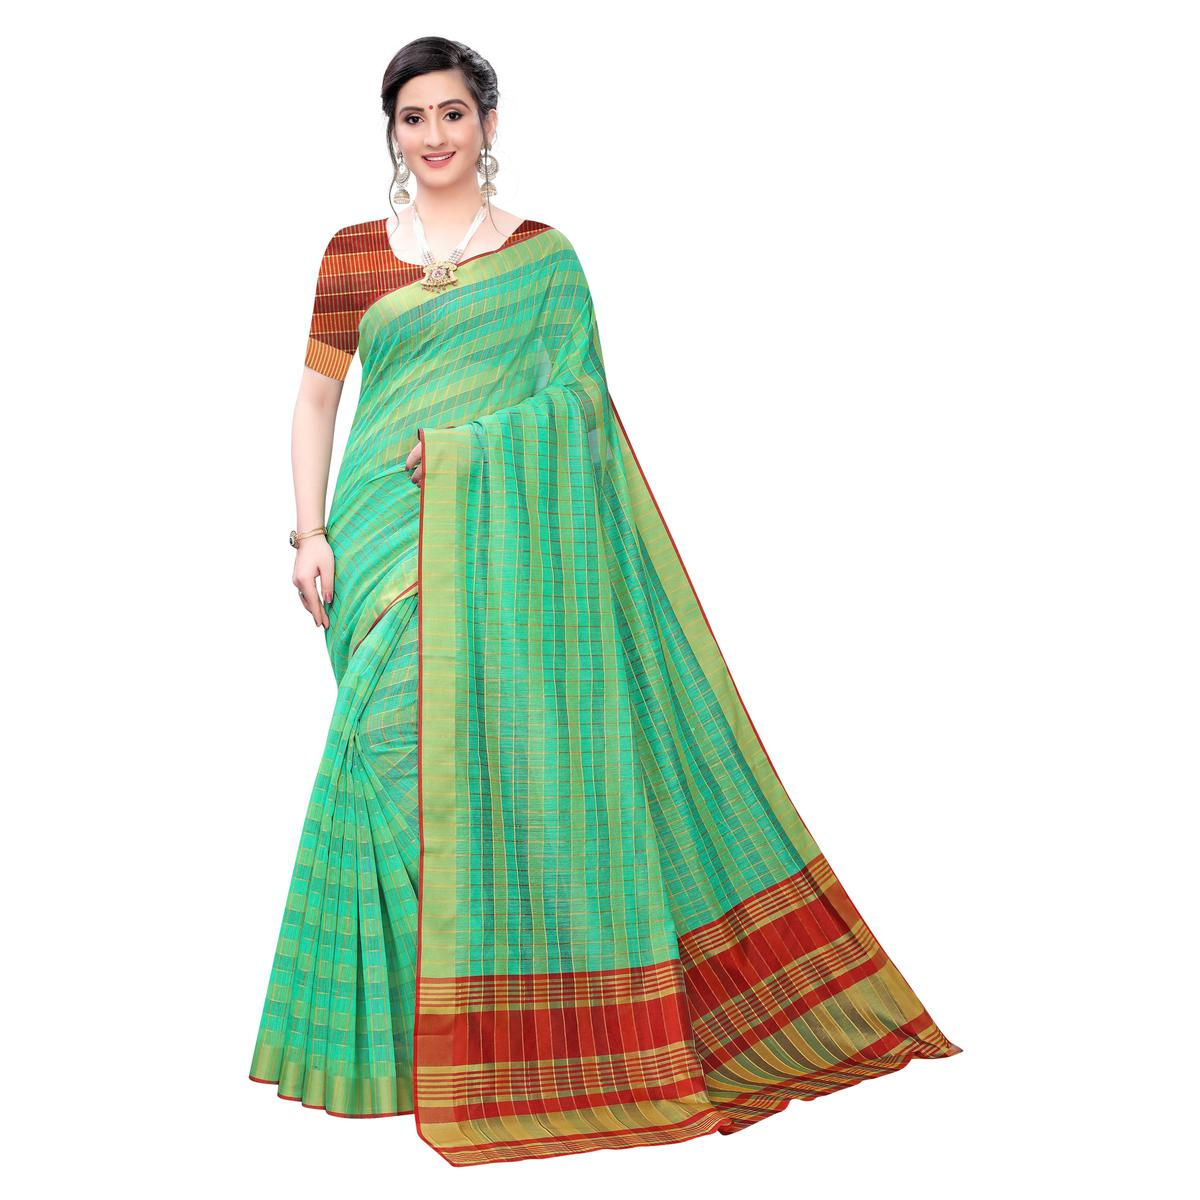 Elegant Green Colored Festive Wear Woven Blended Cotton Saree